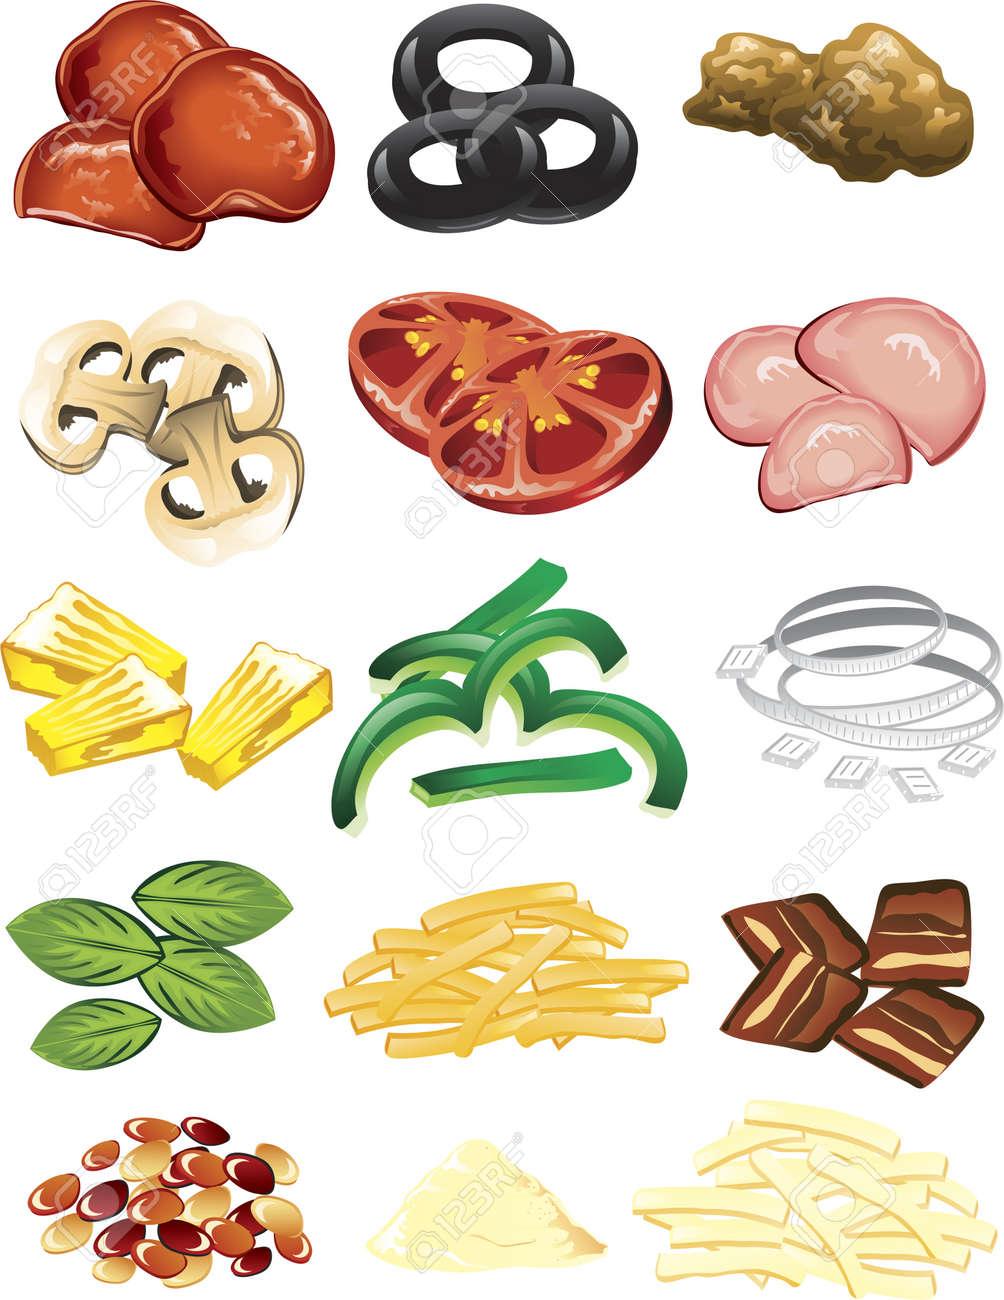 illustration of different pizza toppings and cheese royalty free rh 123rf com Pizza Clip Art for Teachers Pizza Clip Art for Teachers